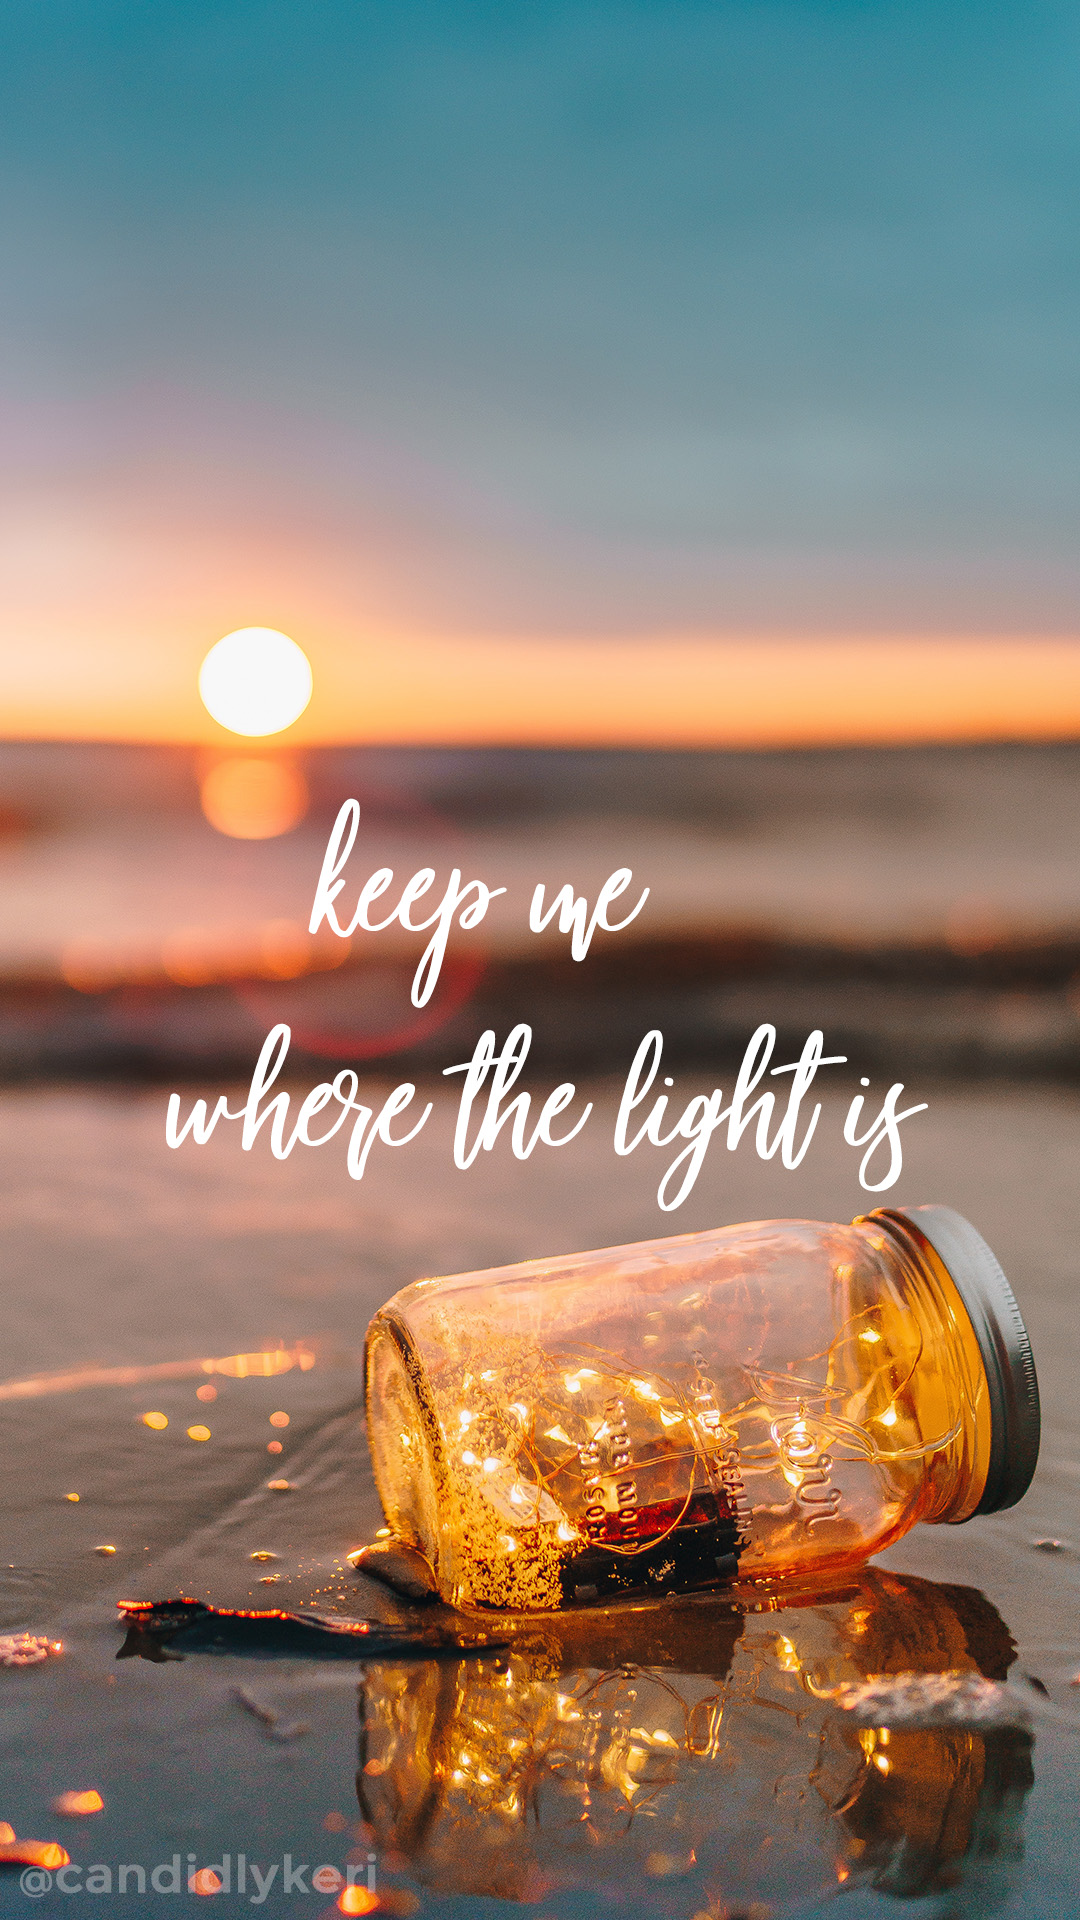 Keep-me-where-the-light-is-quote-sunset-mason-jar-you-can-download-for-free-on-the-blog-F-wallpaper-wpc9006871